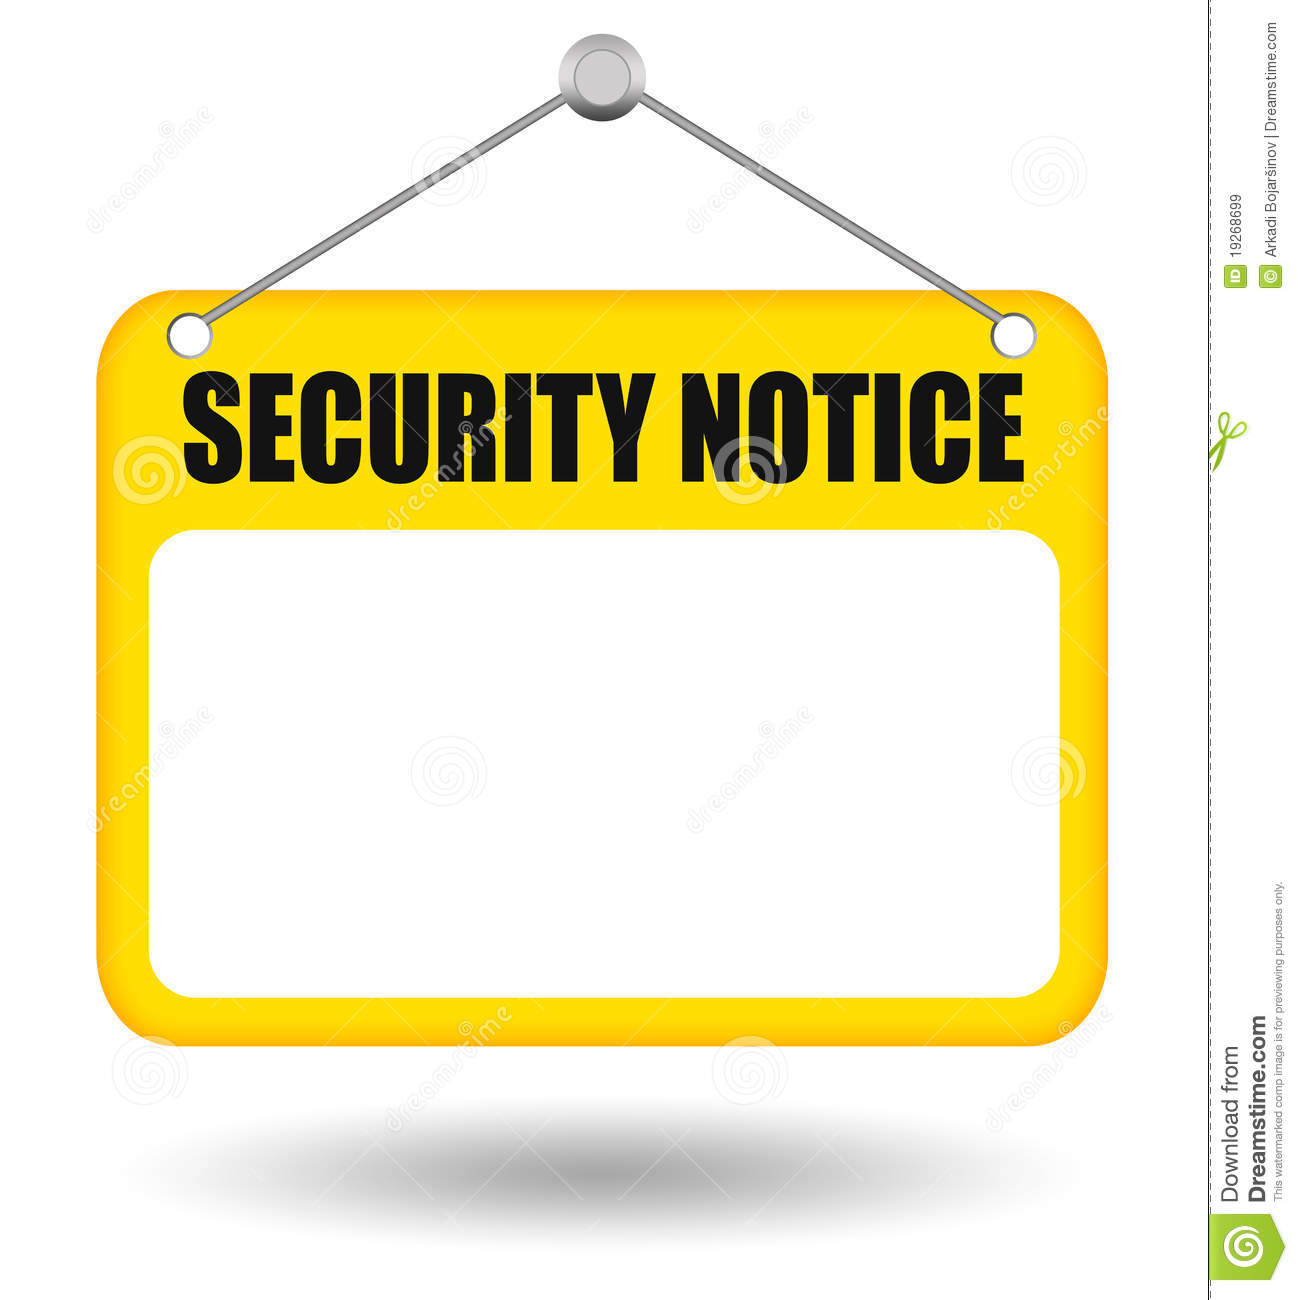 Royalty Free Stock Images Security Notice Board Image19268699 furthermore Jump Scares In Scream Iii 2000 further Konfort 705r besides 121 Pt1000 Universal Sensor 6x50mm 200c moreover Cs P15. on warning alarm